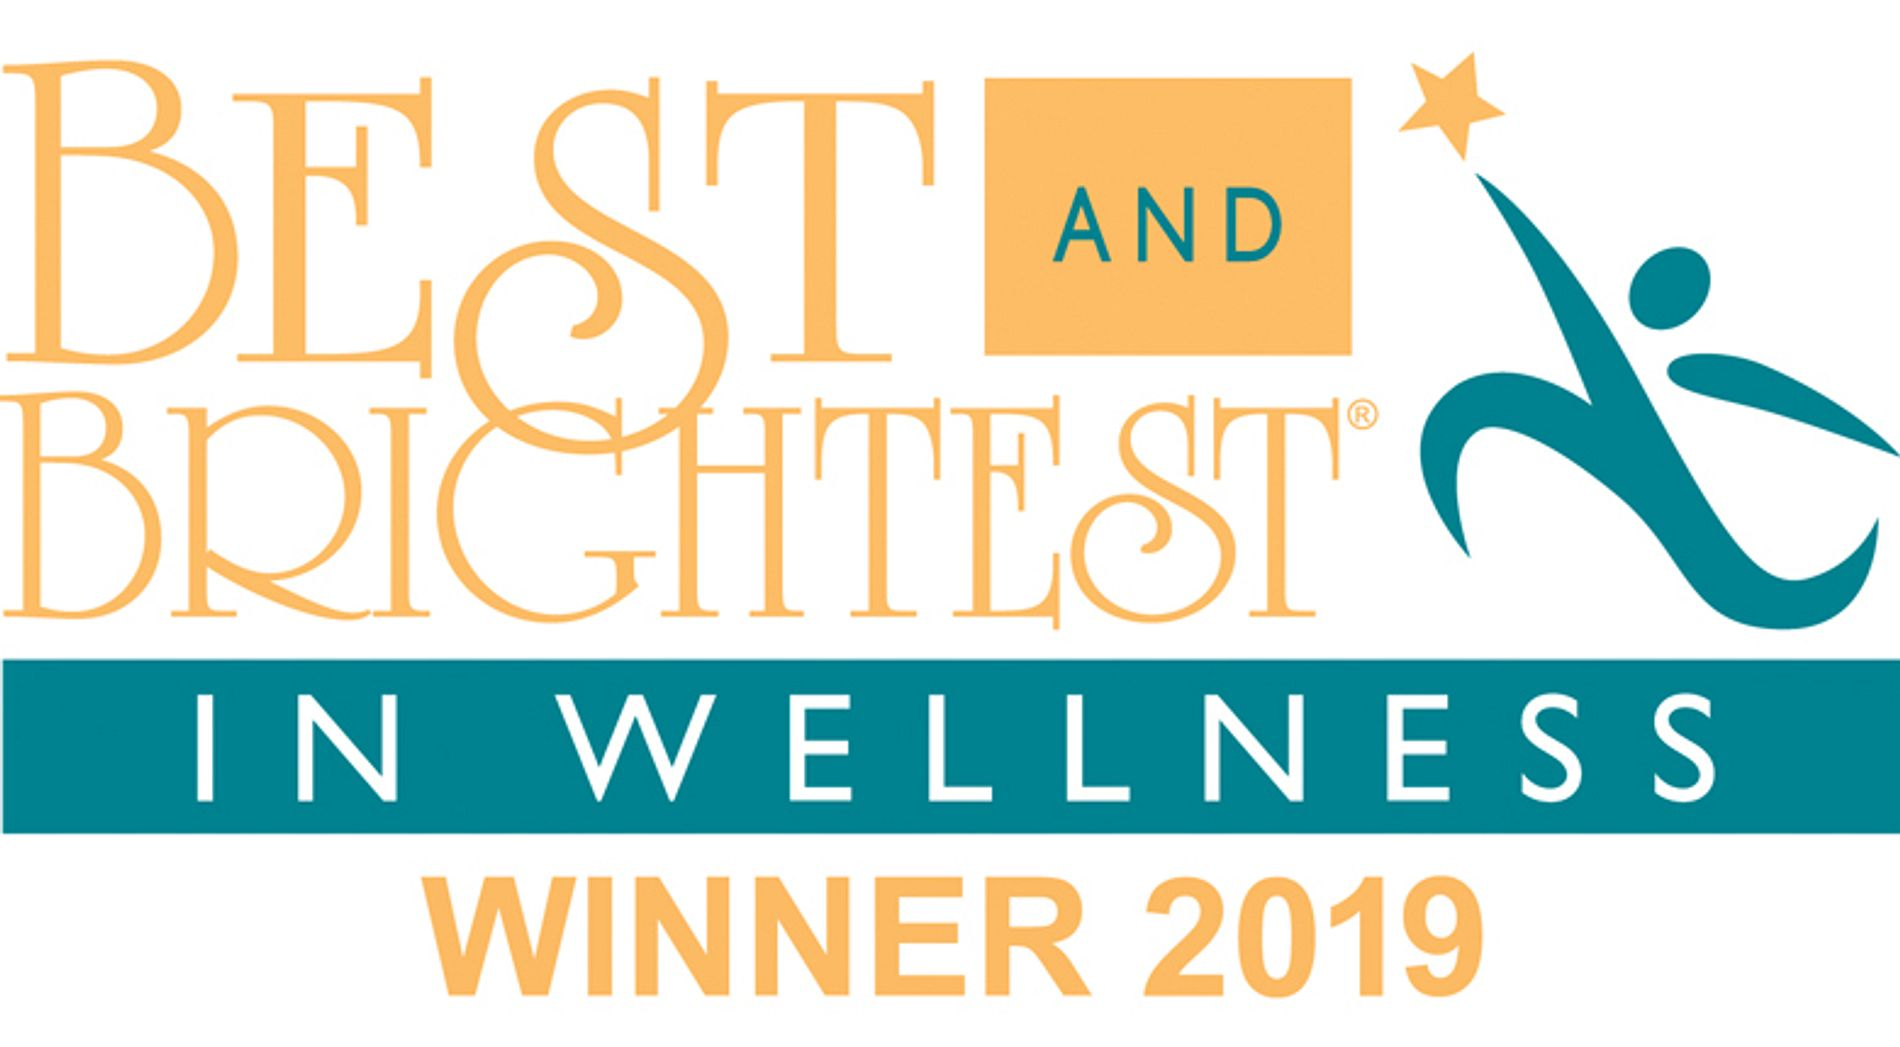 Oswald Companies Named 2019 Winner of Michigan's Best and Brightest in Wellness®Award Program